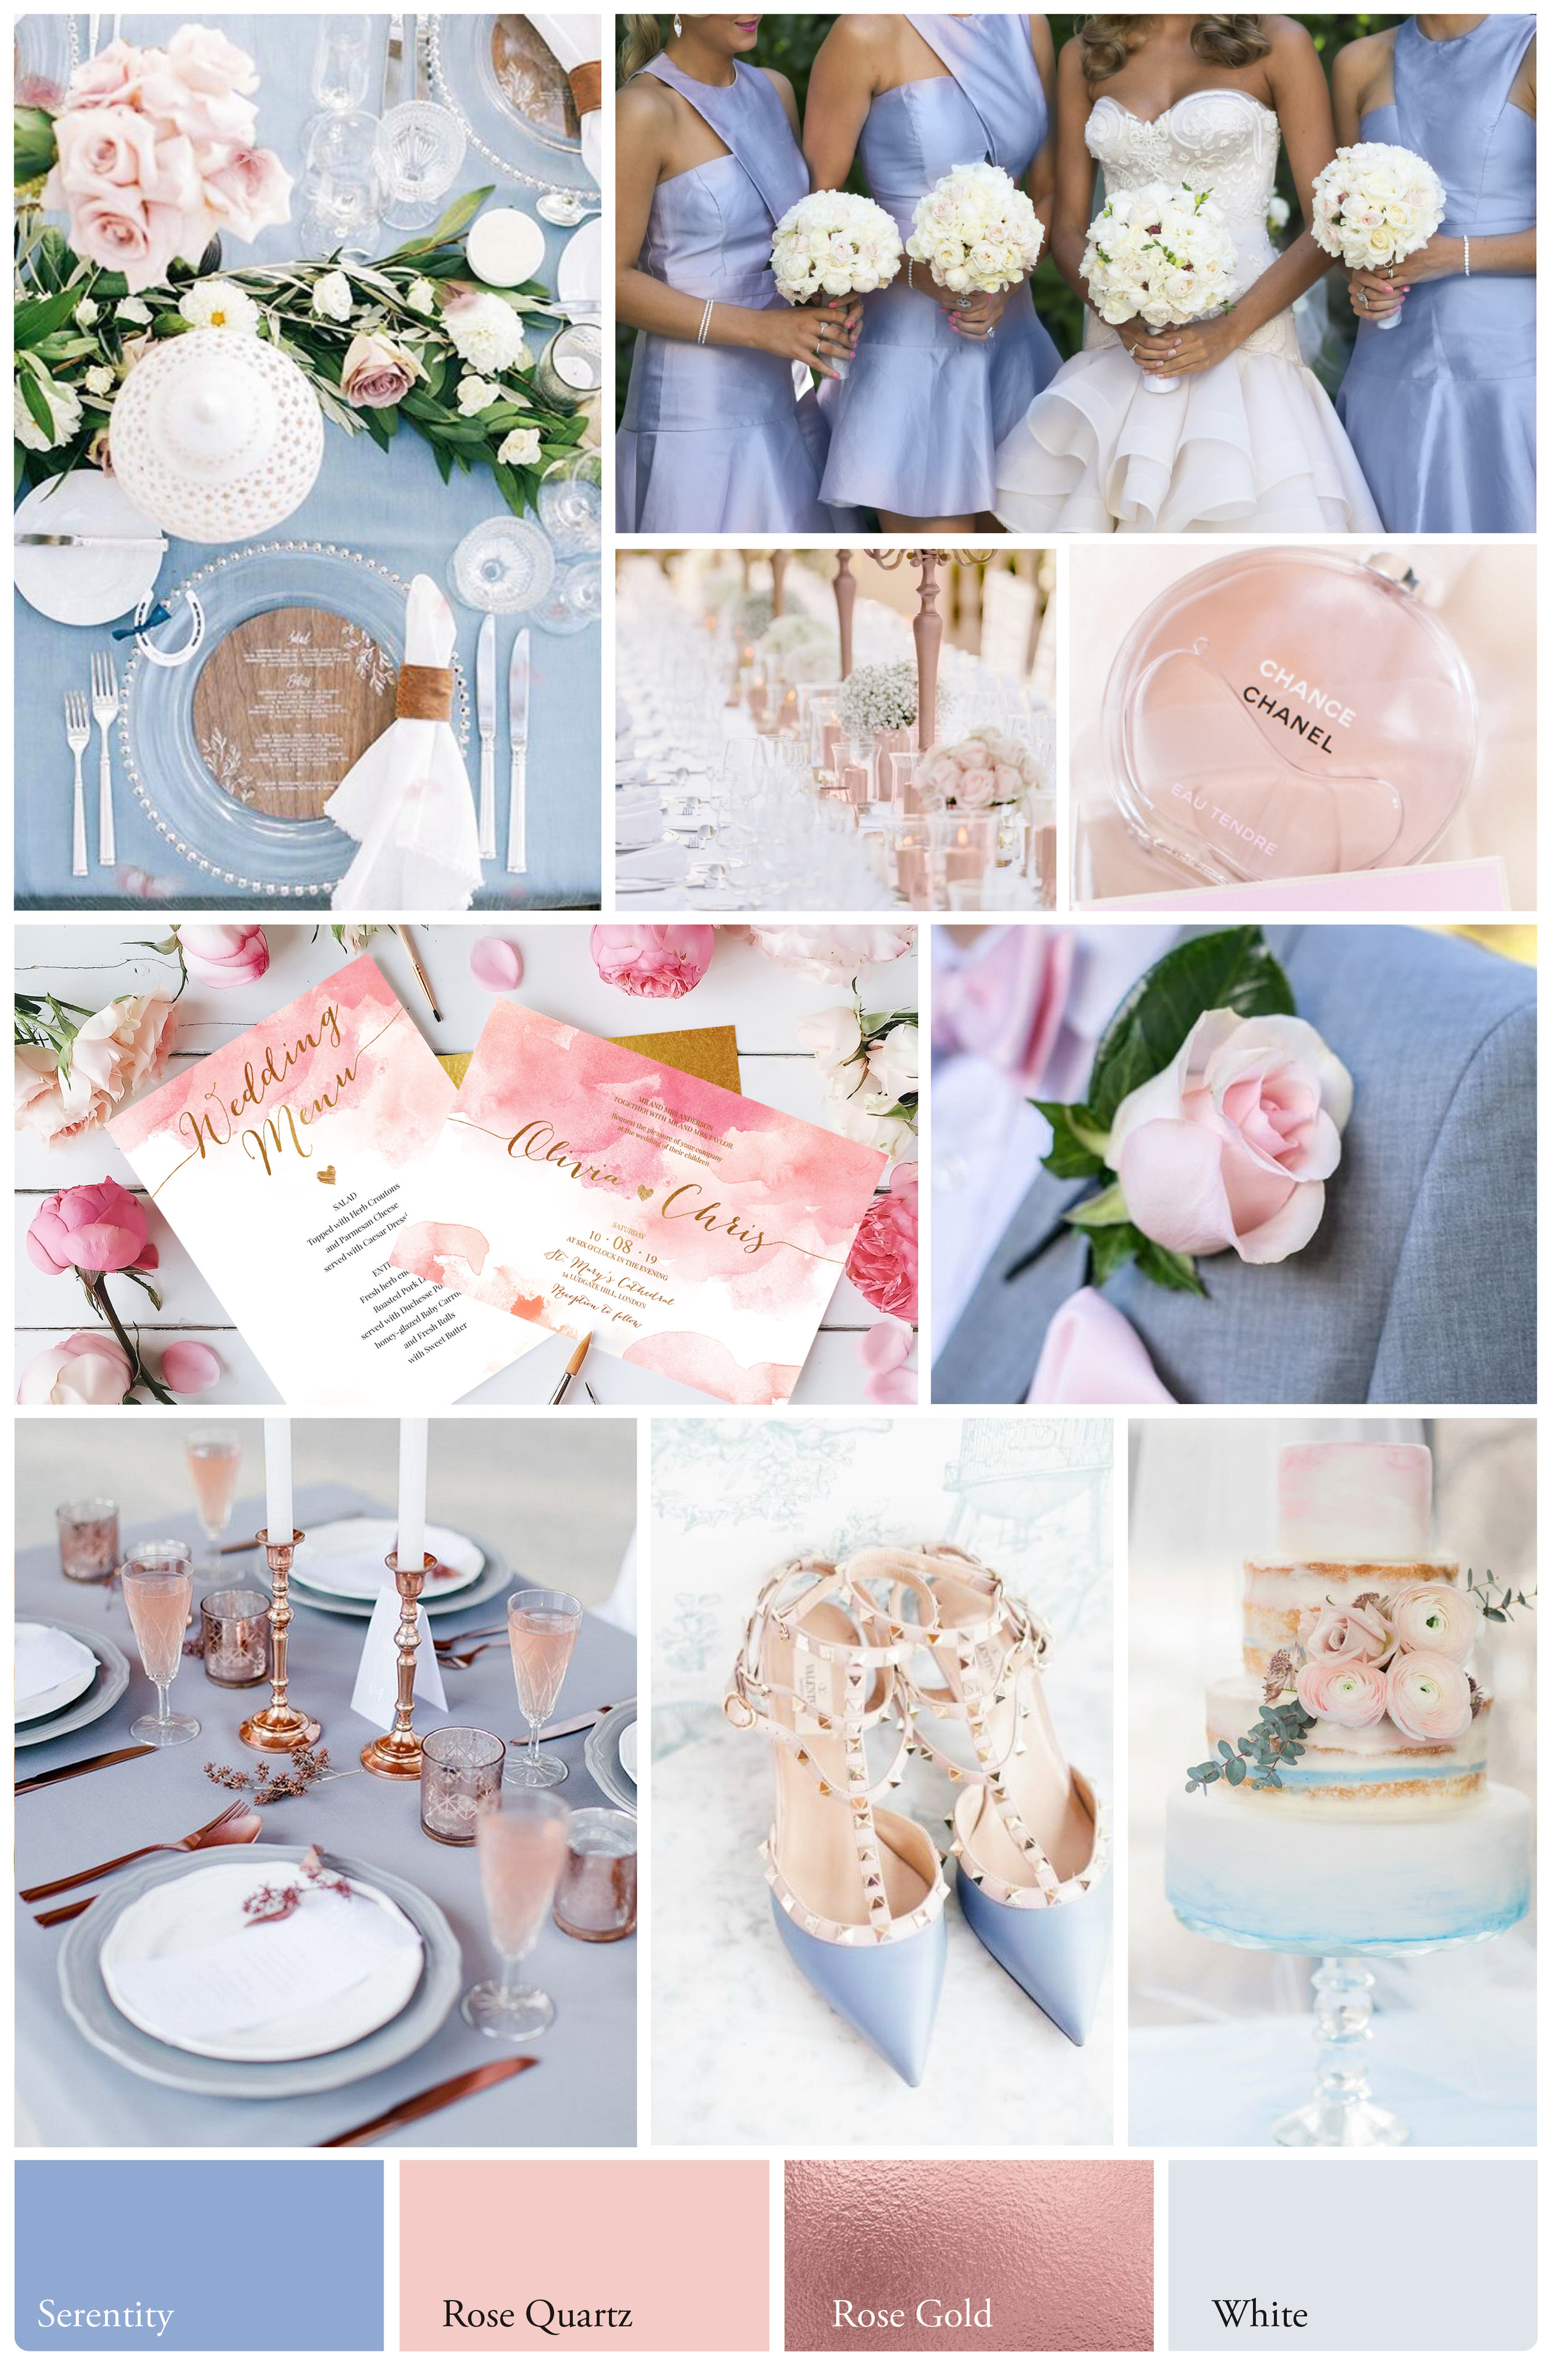 Charming & Romantic  - A charming wedding embodying a romantic and feminine feel. Rich in pastel and a whimsical feel with touches of rose gold for that air of luxury and class.